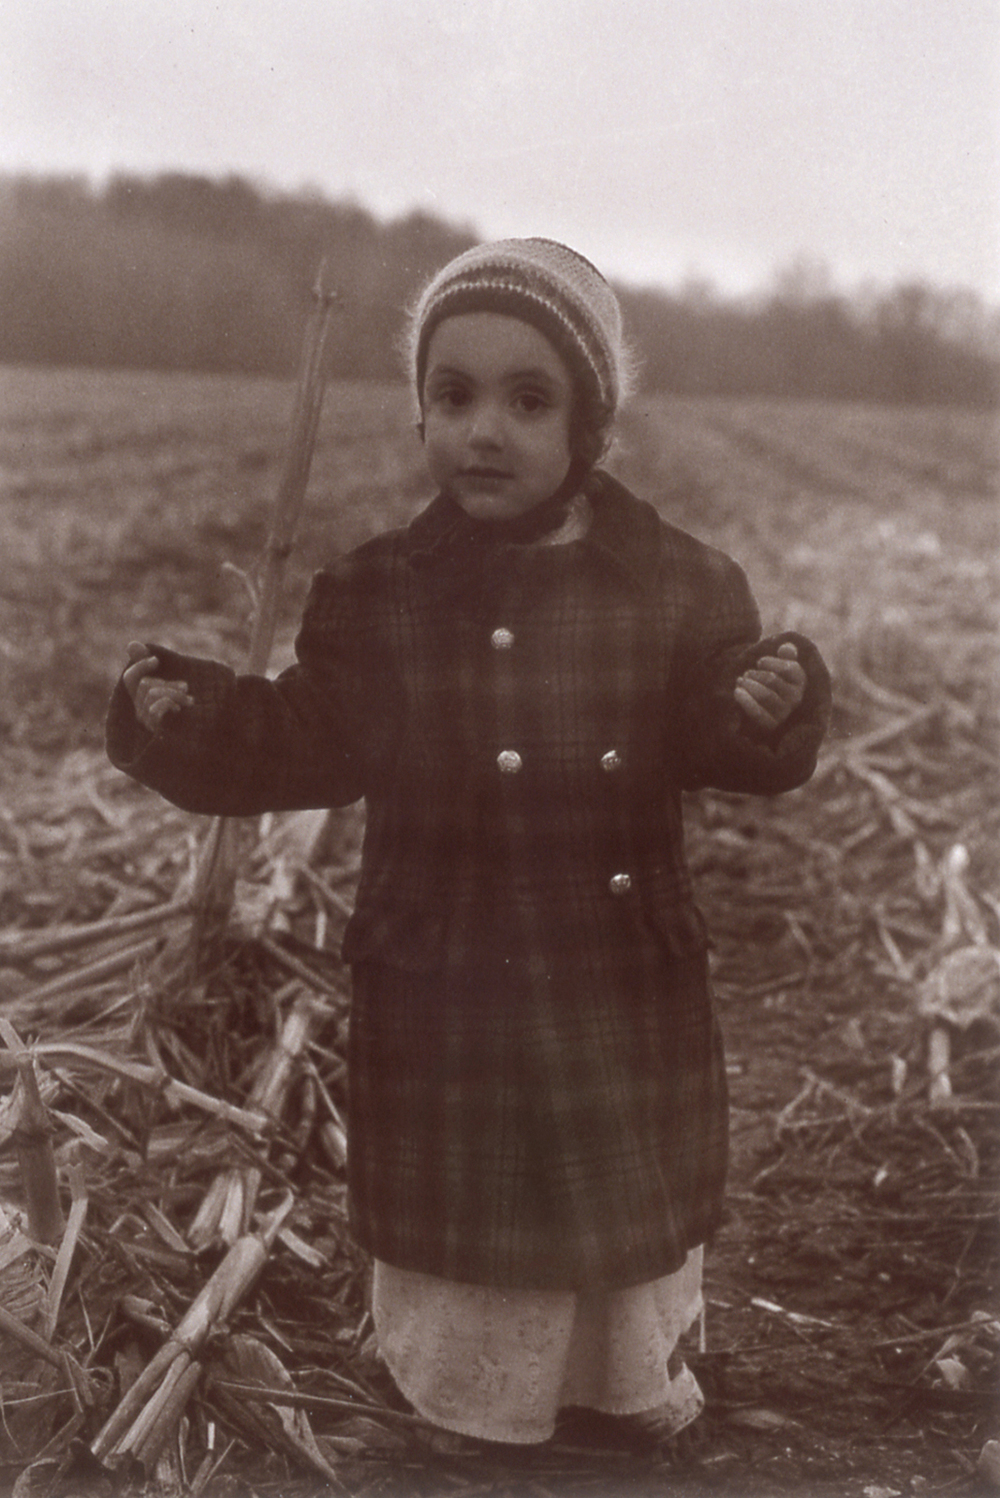 Ruby in the cornfield upstate, 1976                                          Ph: Sheila Metzner